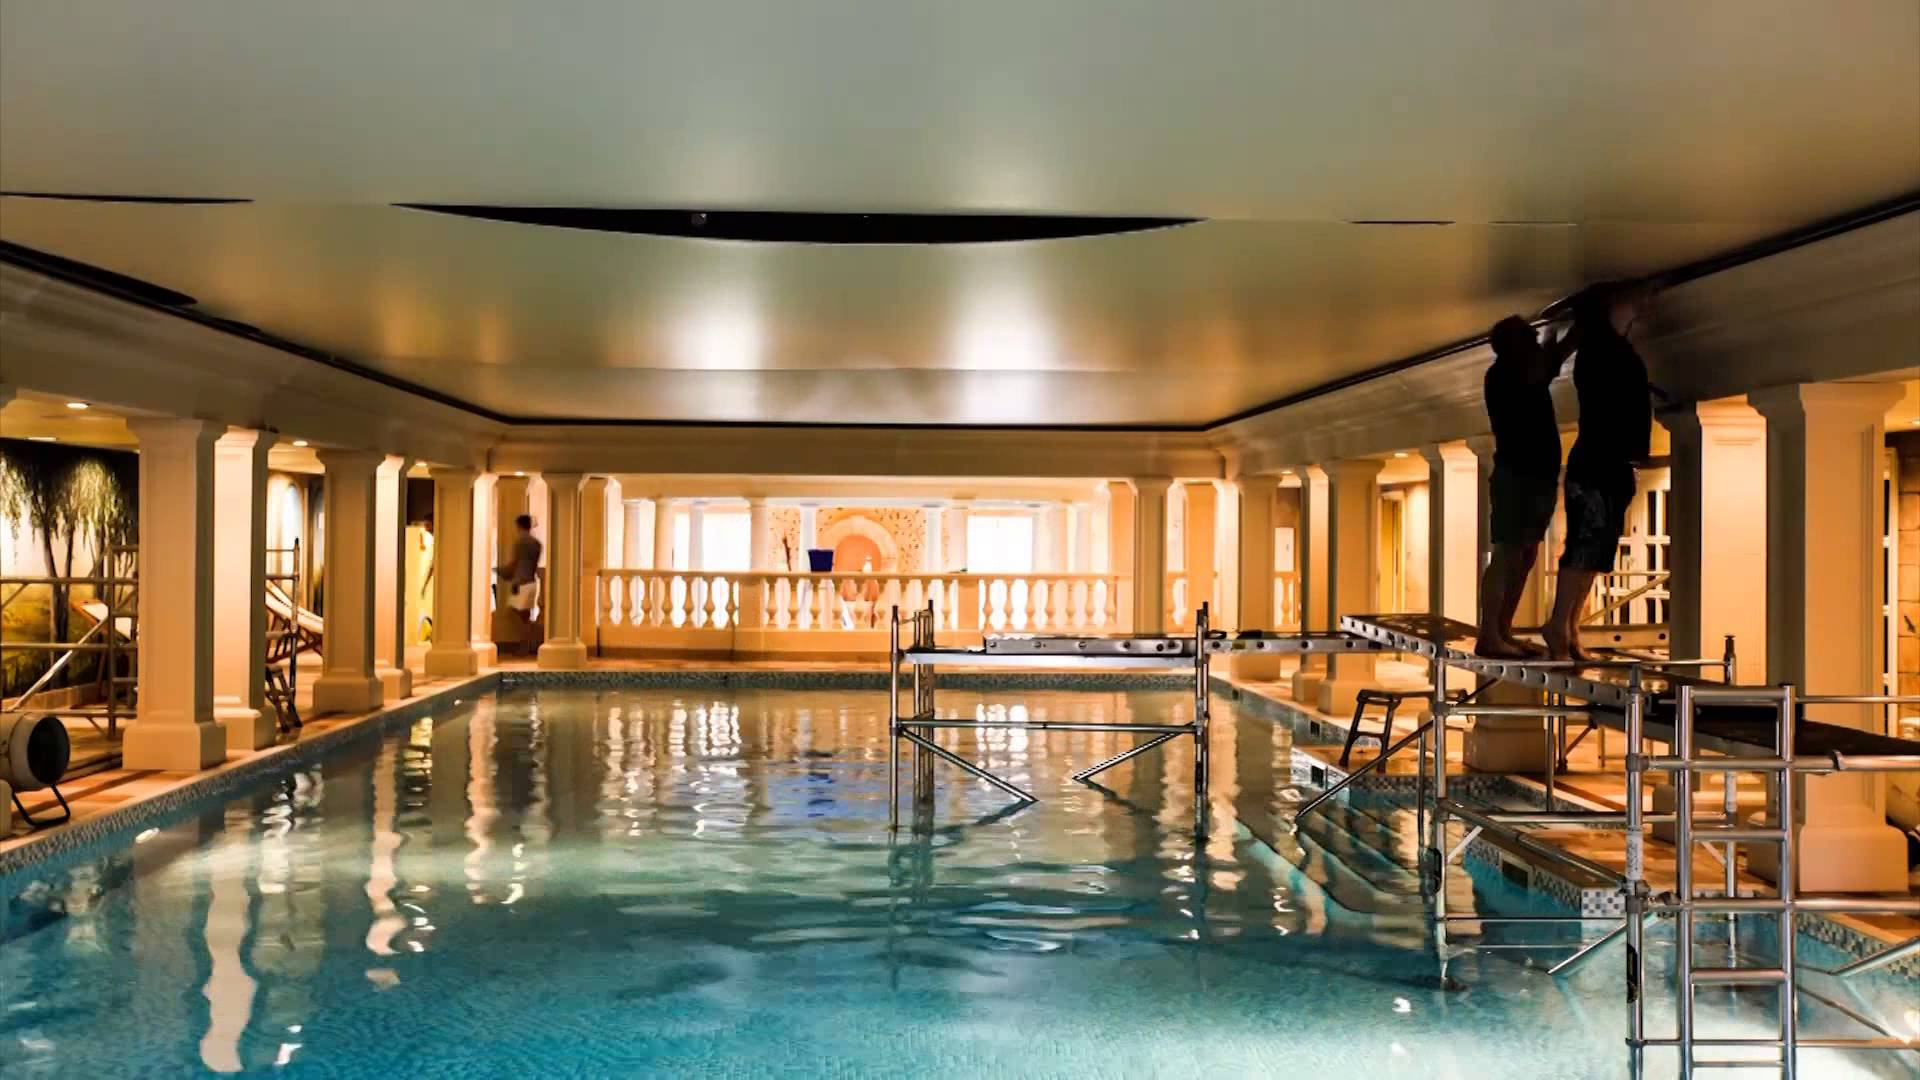 Barrisol Swimming Pool Ceiling Rescue